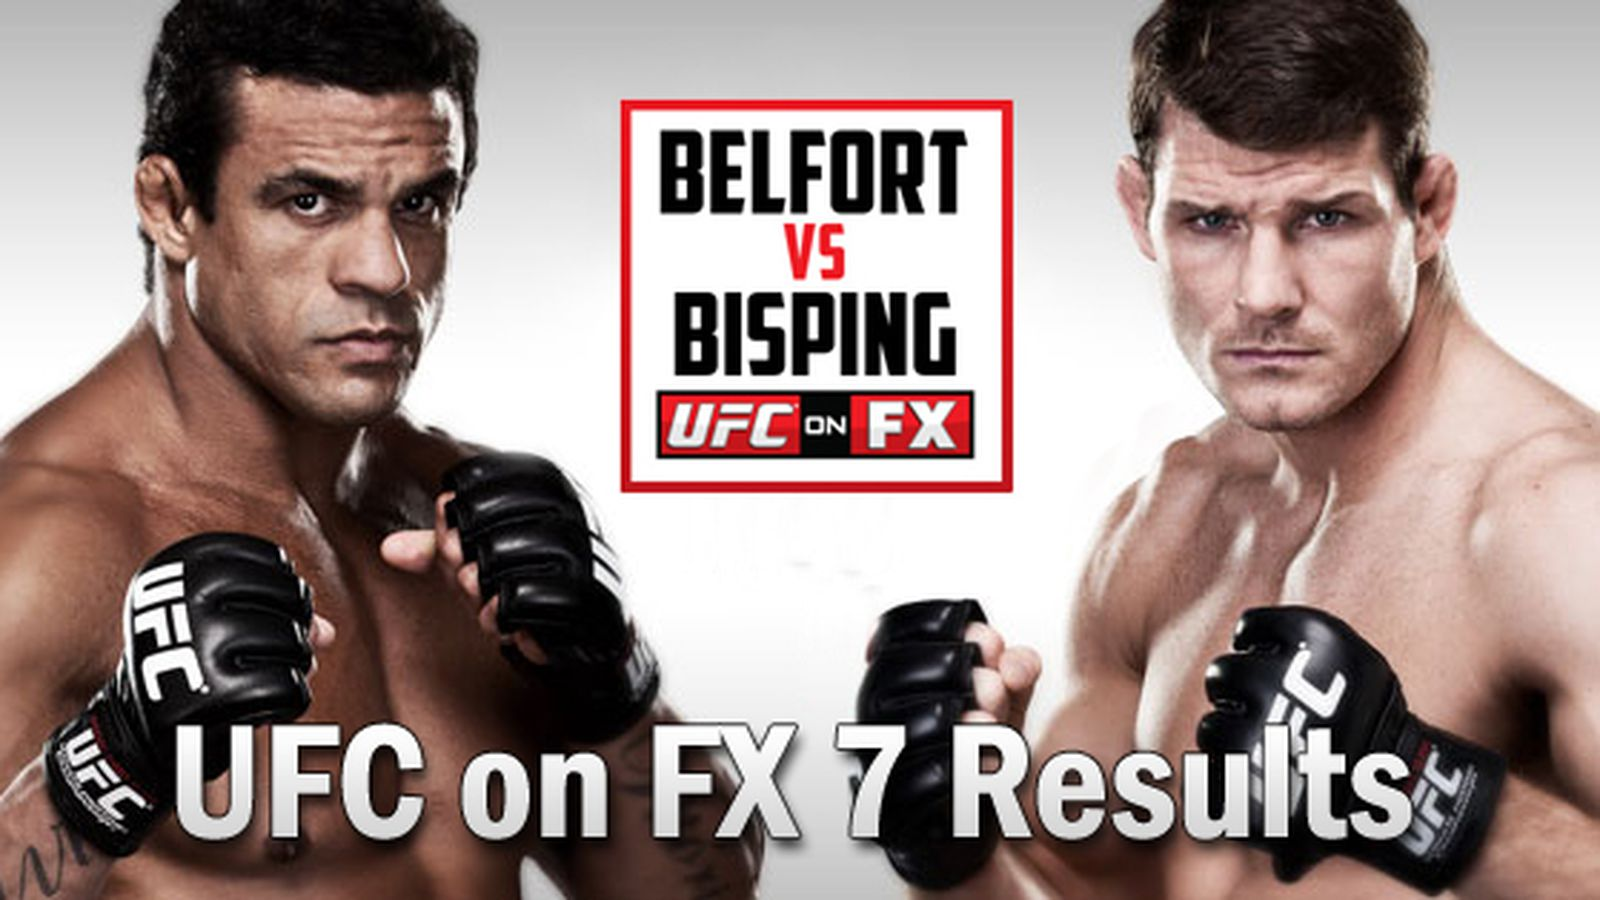 UFC on FX 7 results and LIVE f...